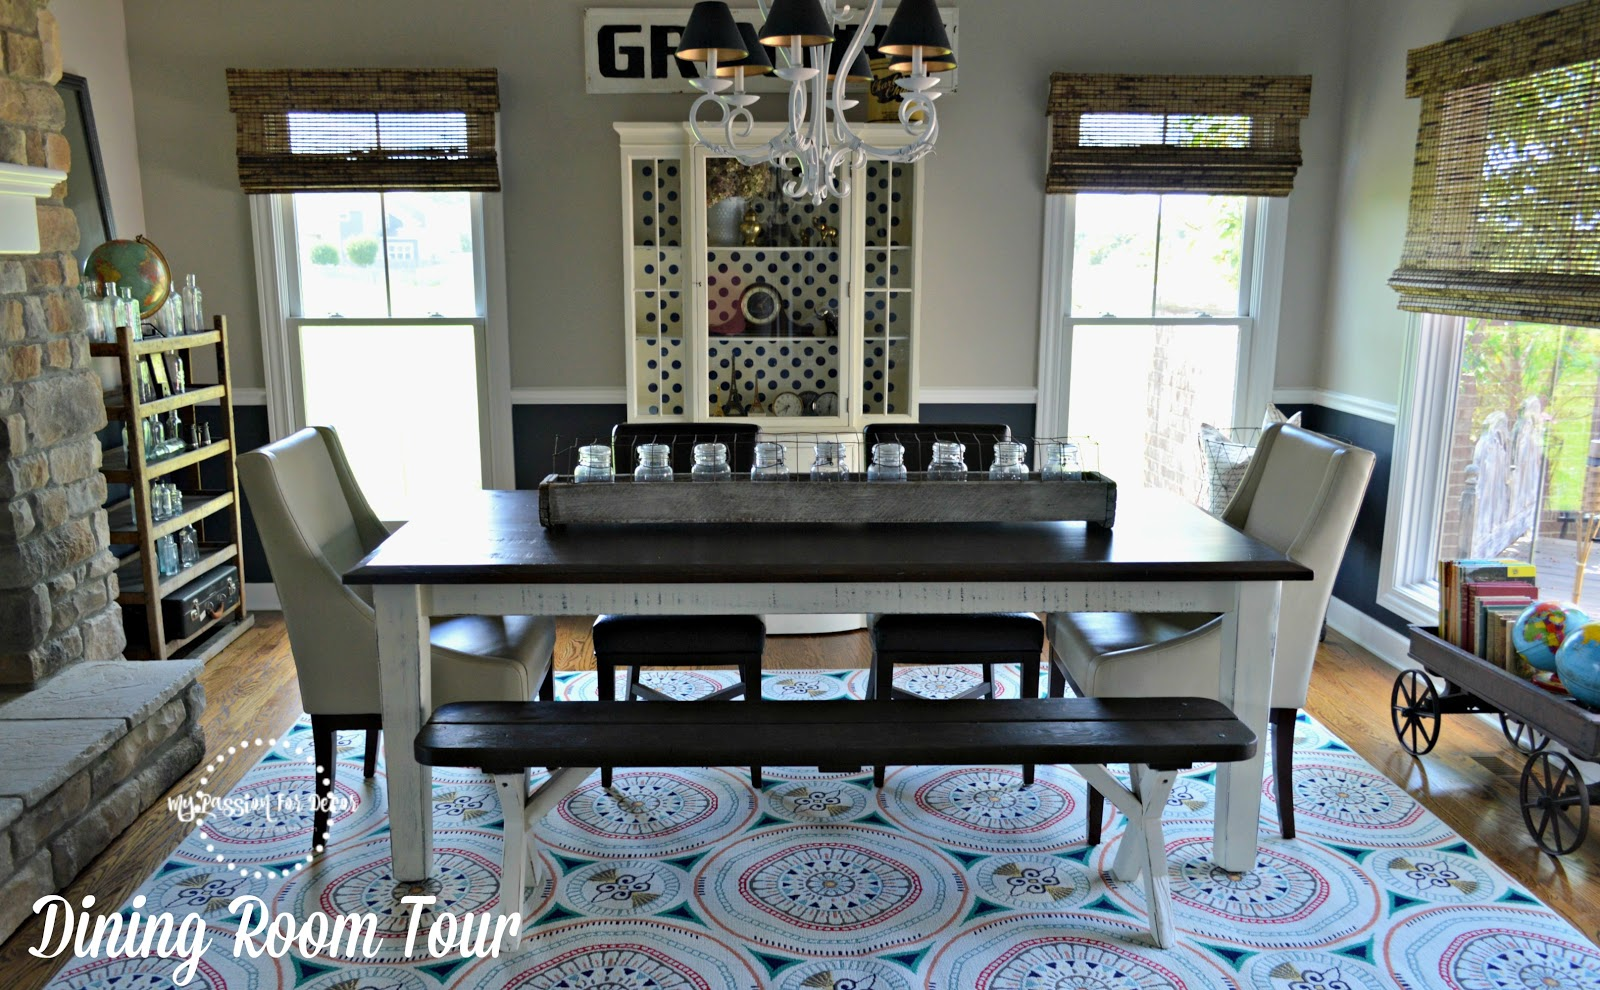 My Passion For Decor: My Passion For Decor: The Dining Room Tour